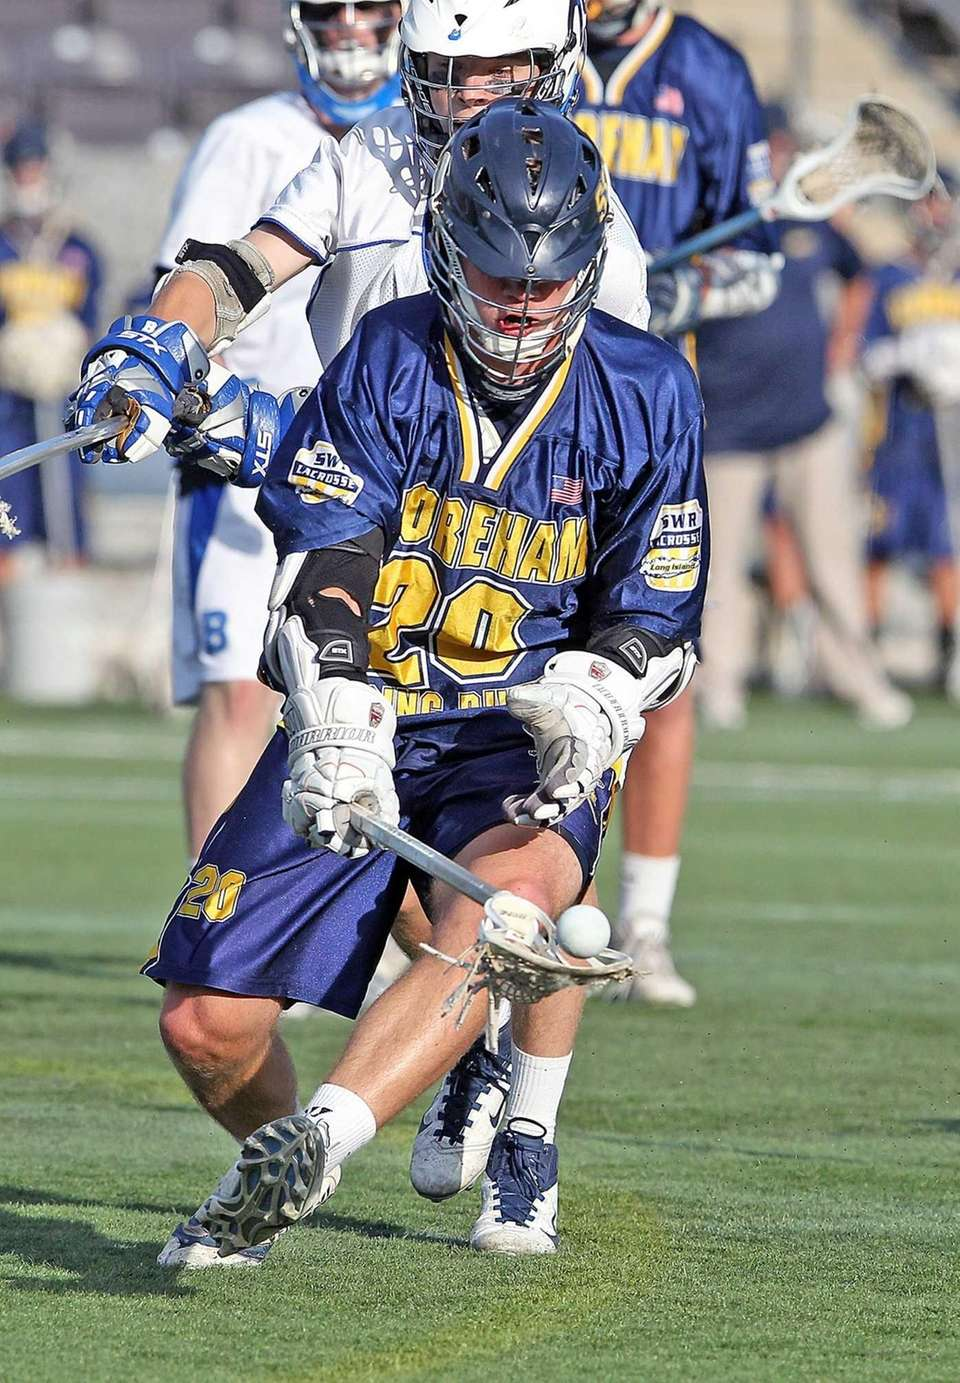 Shoreham-Wading River's Timothy Rotanz recovers the ball during